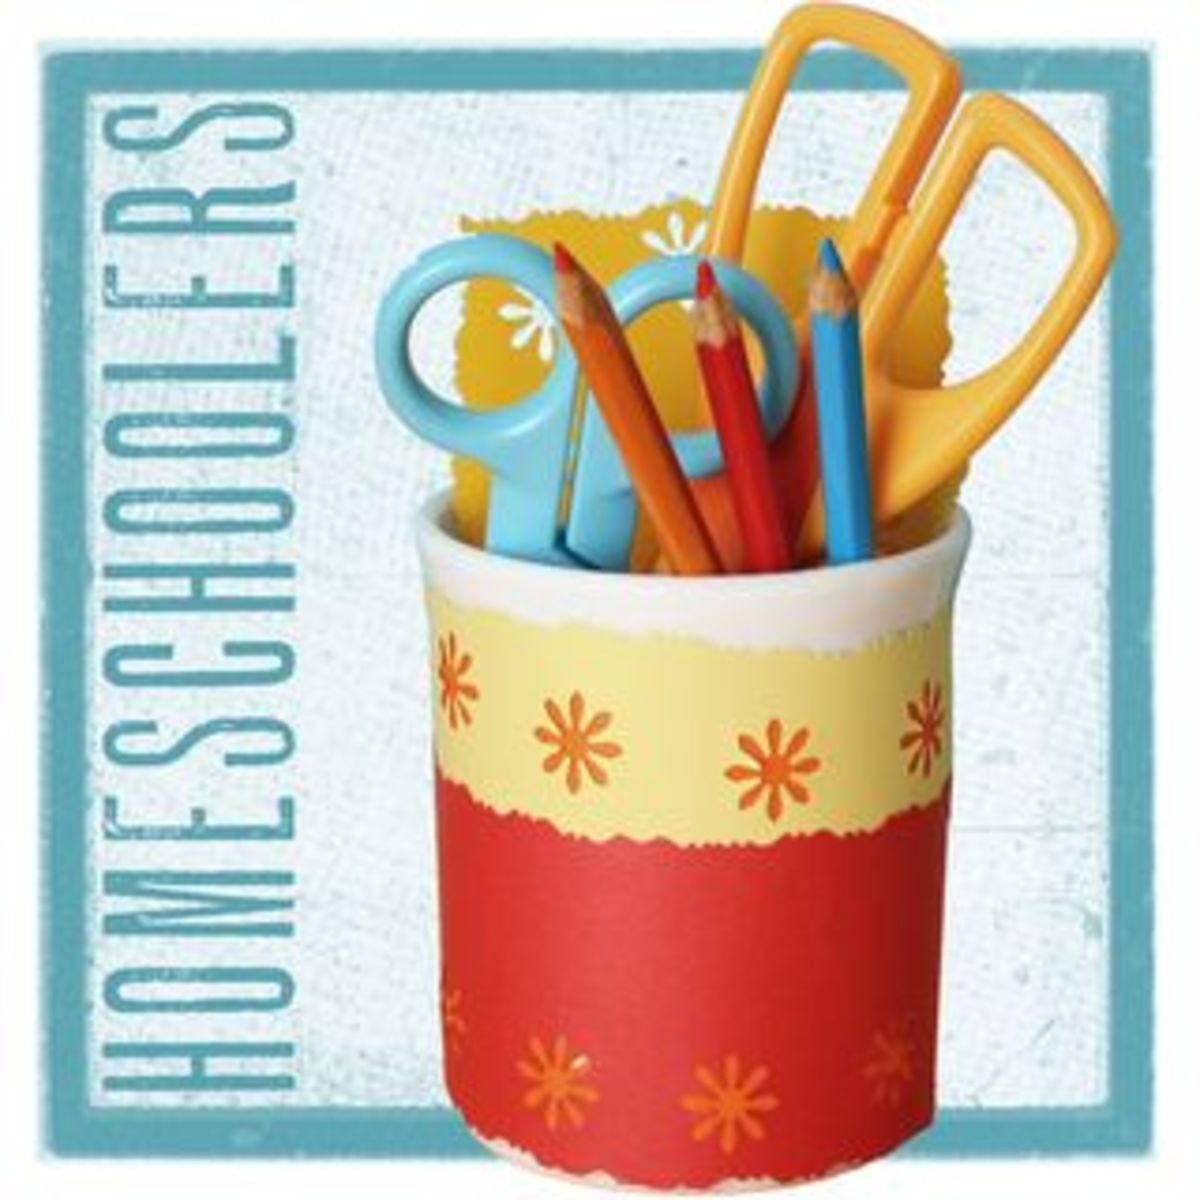 advice-for-parents-who-want-to-homeschool-their-children